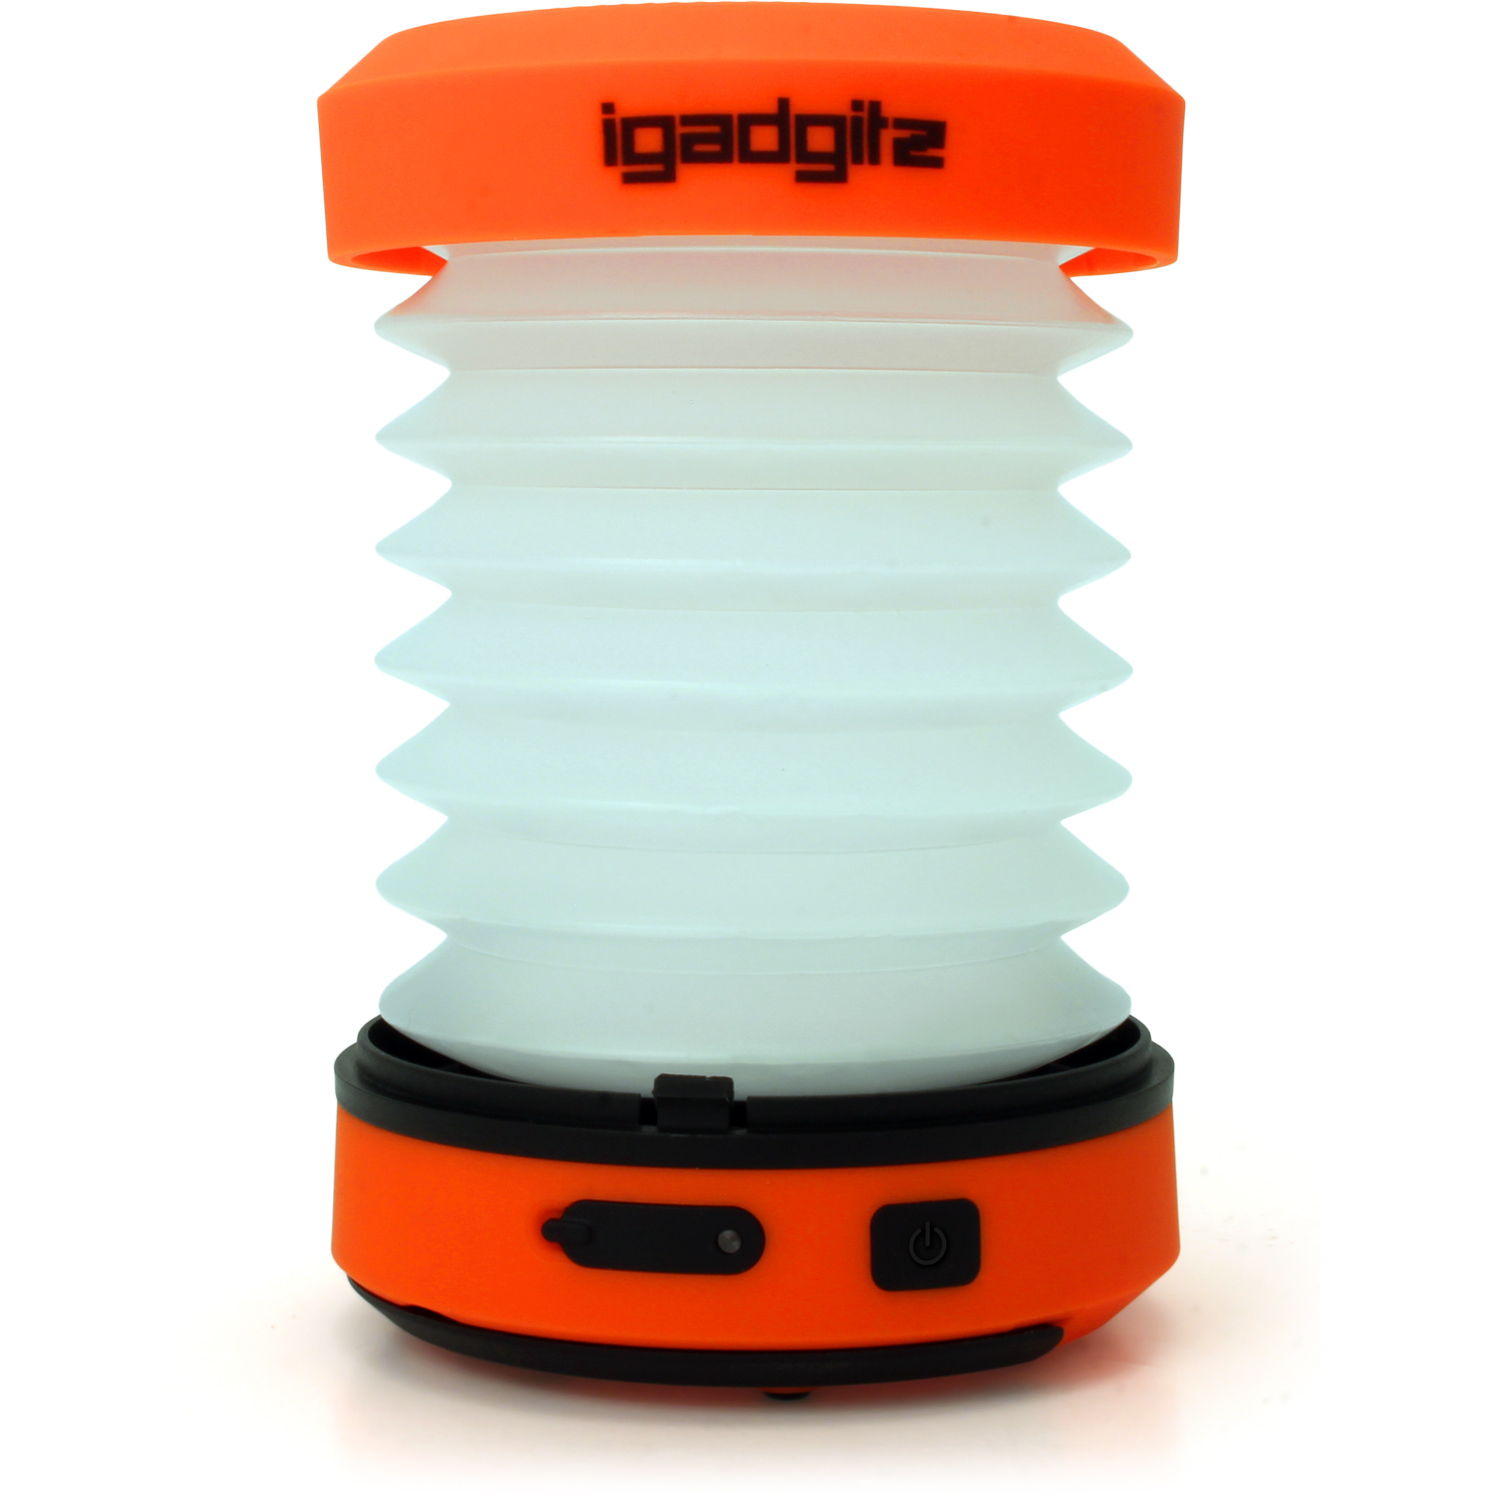 Lanterne lampe camping led torche pliable dynamo rechargeable bouviac p che - Lampe camping rechargeable ...